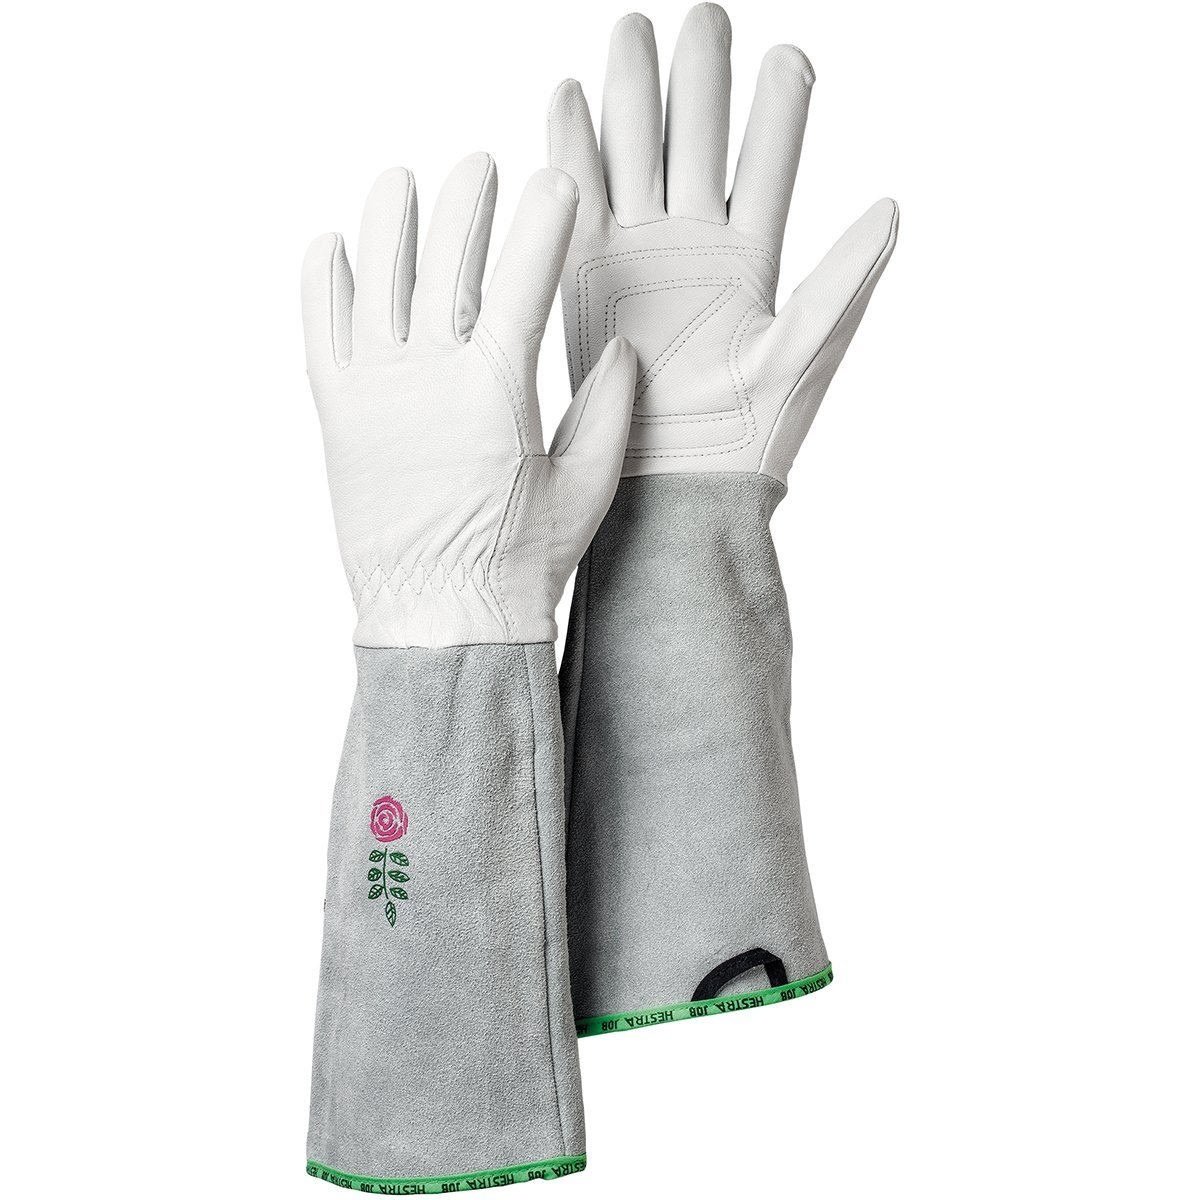 Hestra Garden Gloves: Womens Rose Outdoor Leather Work Gloves, Off White, 7